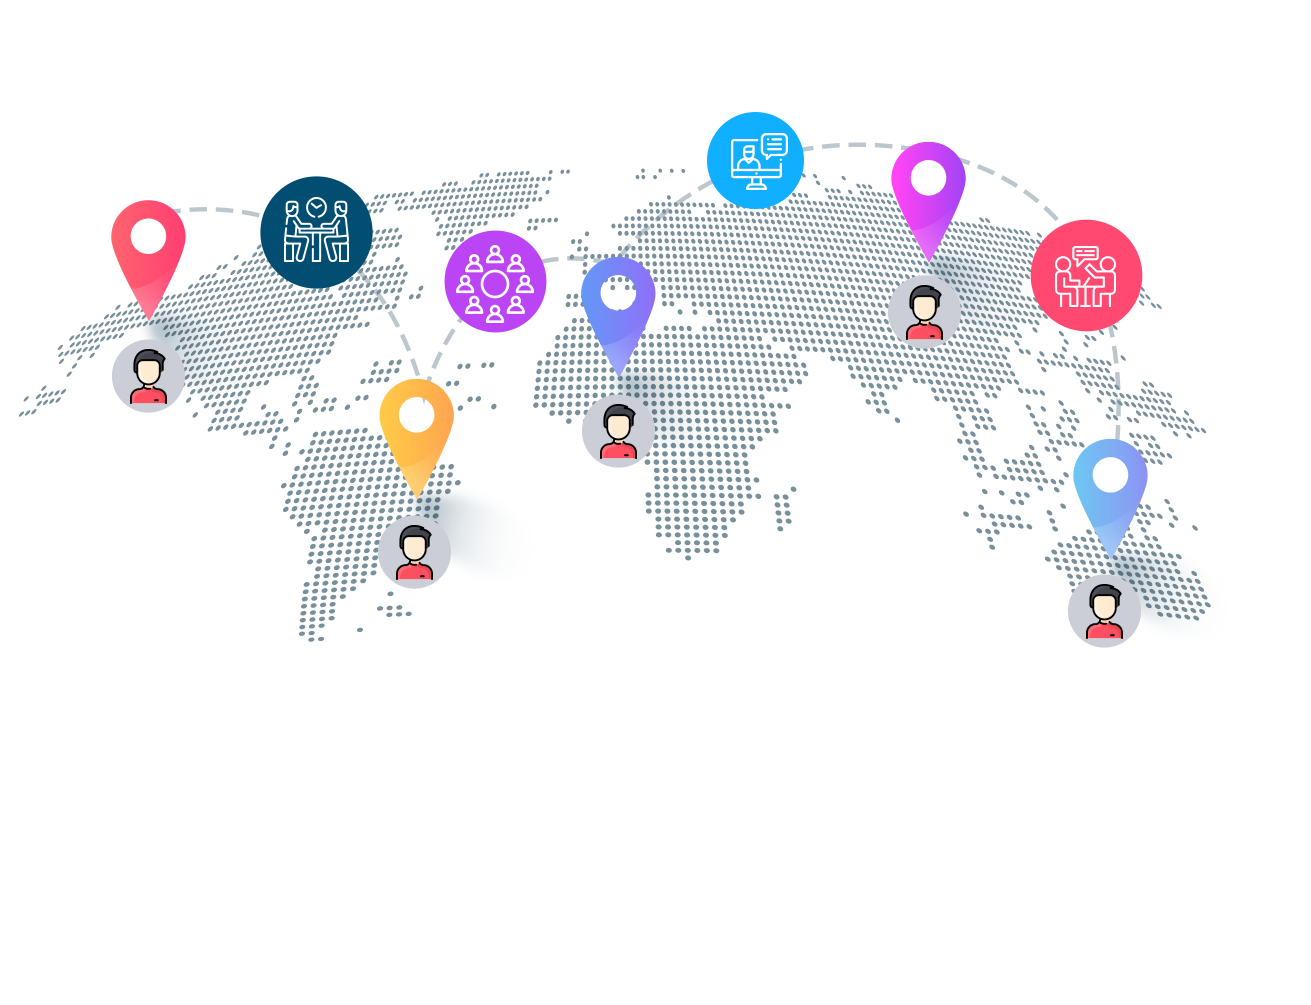 Illustration of how you can connect with people all over the world with Roundesk